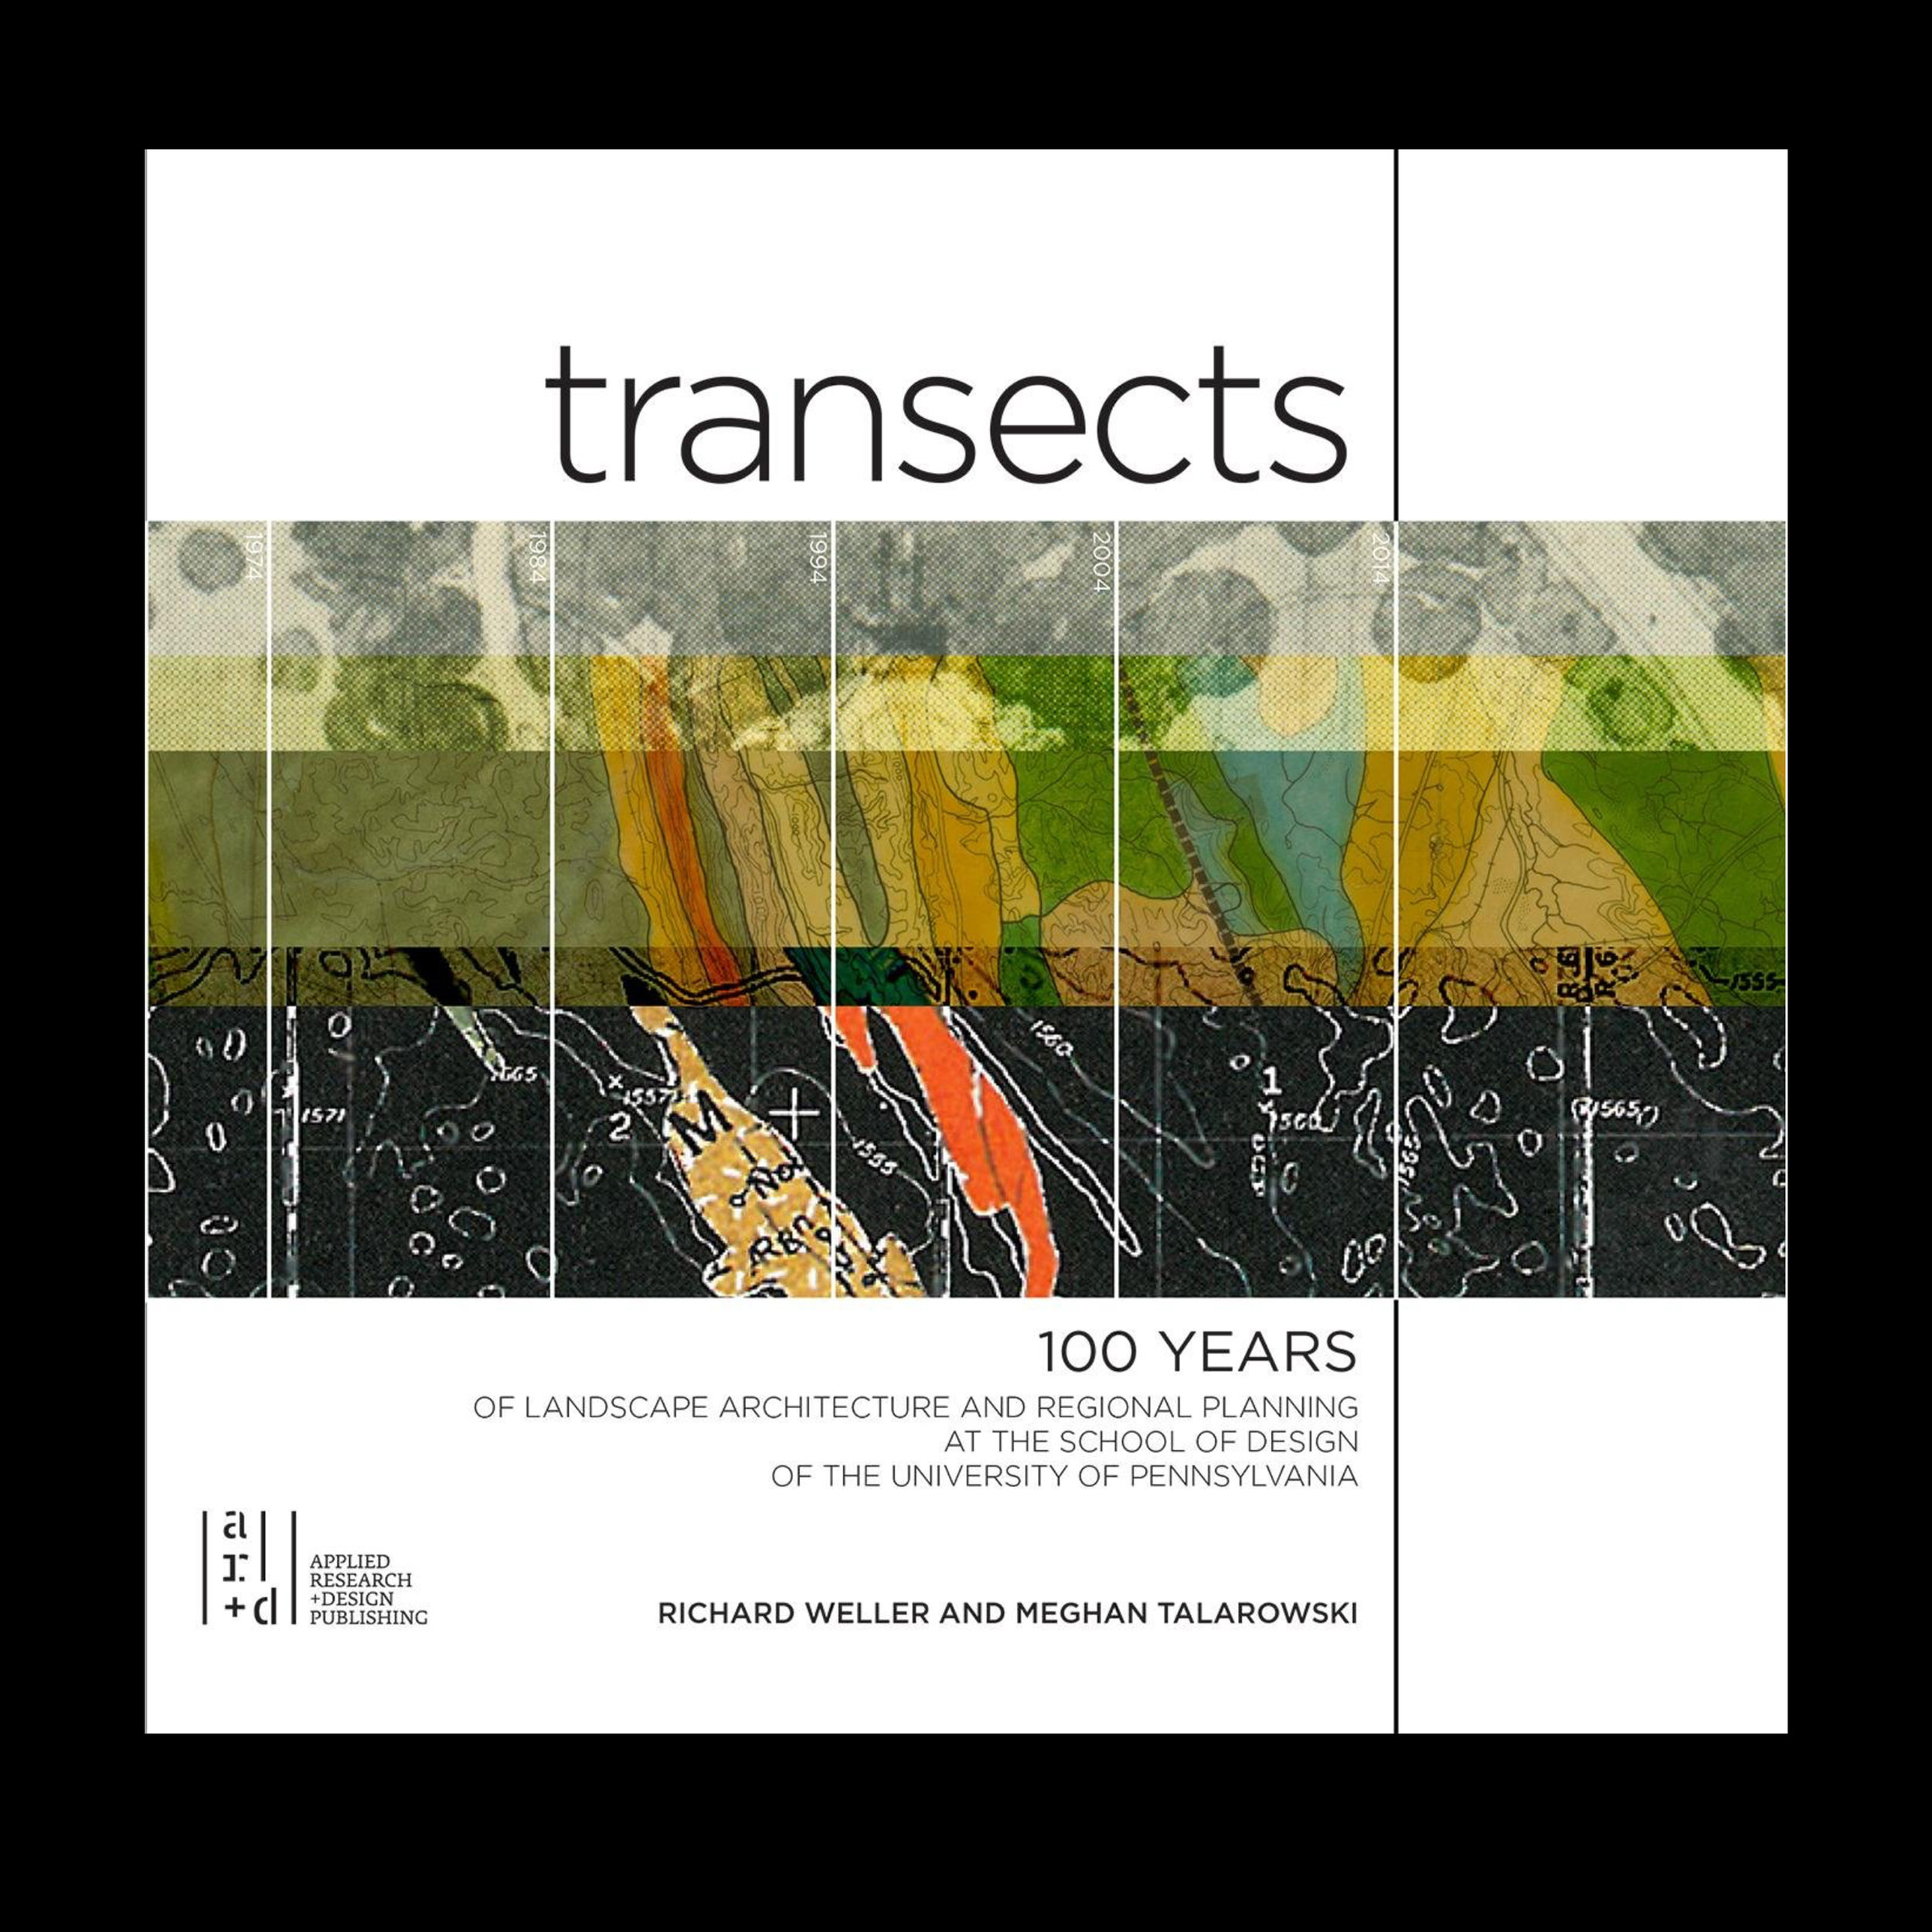 TRANSECTS    100 Years of Landscape Architecture and Regional Planning at the University of Pennsylvania. Applied Research and Design Publishing. 2013 (Co-authored with Meaghan Talarowski)